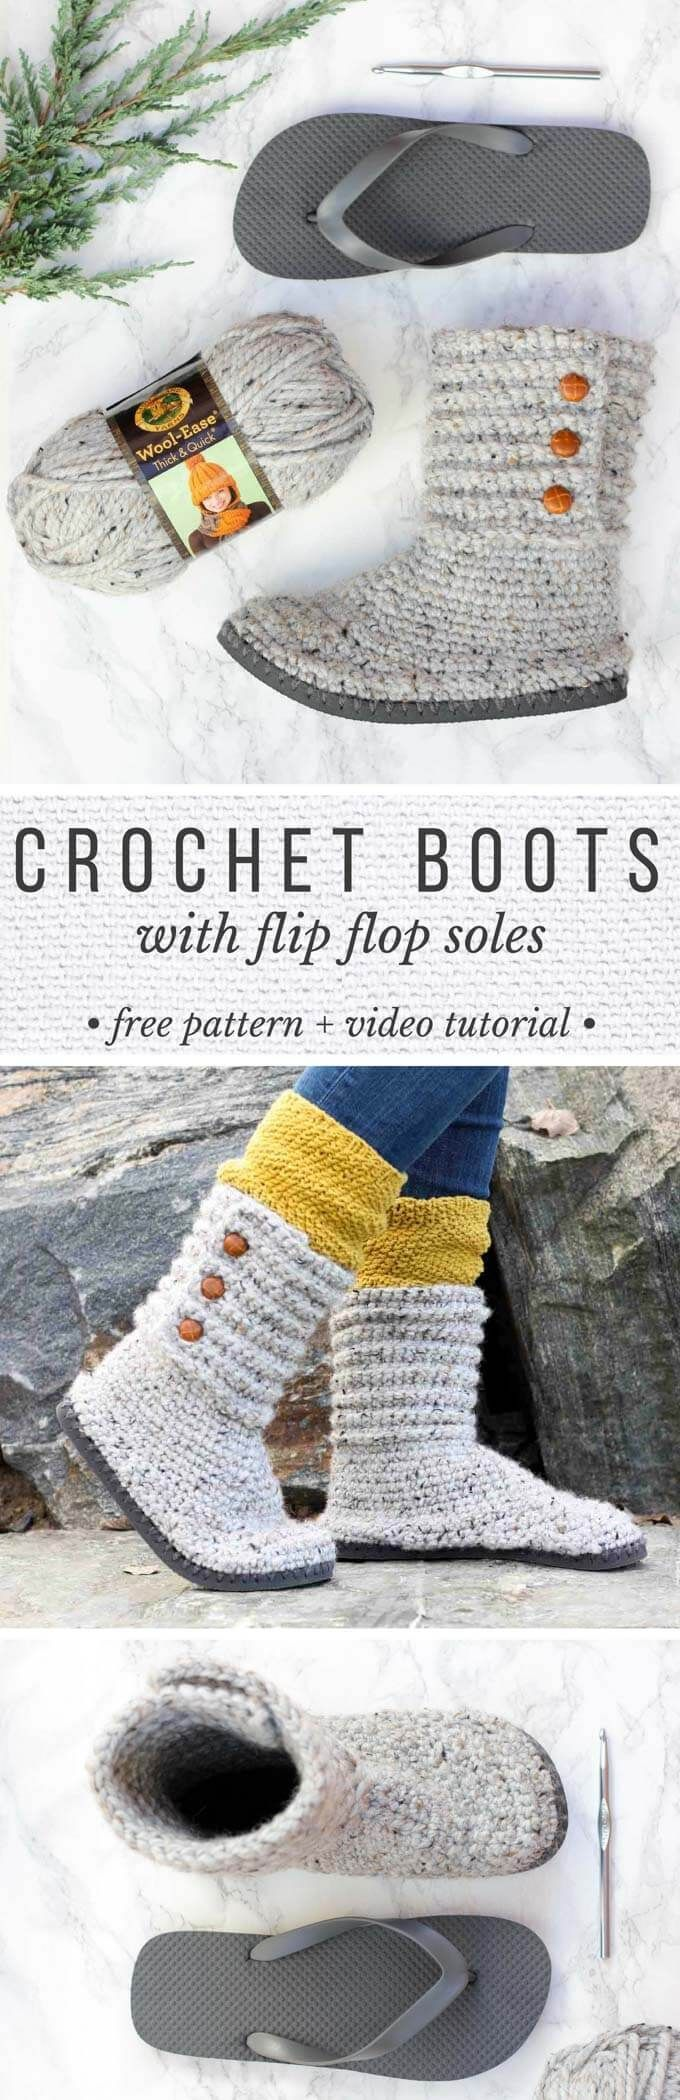 These DIY crochet boots with flip flops for soles make excellent slippers or UGG-like sweater boots to wear around town. Click for the free pattern and thorough video tutorial. These make a great crochet Christmas gift!